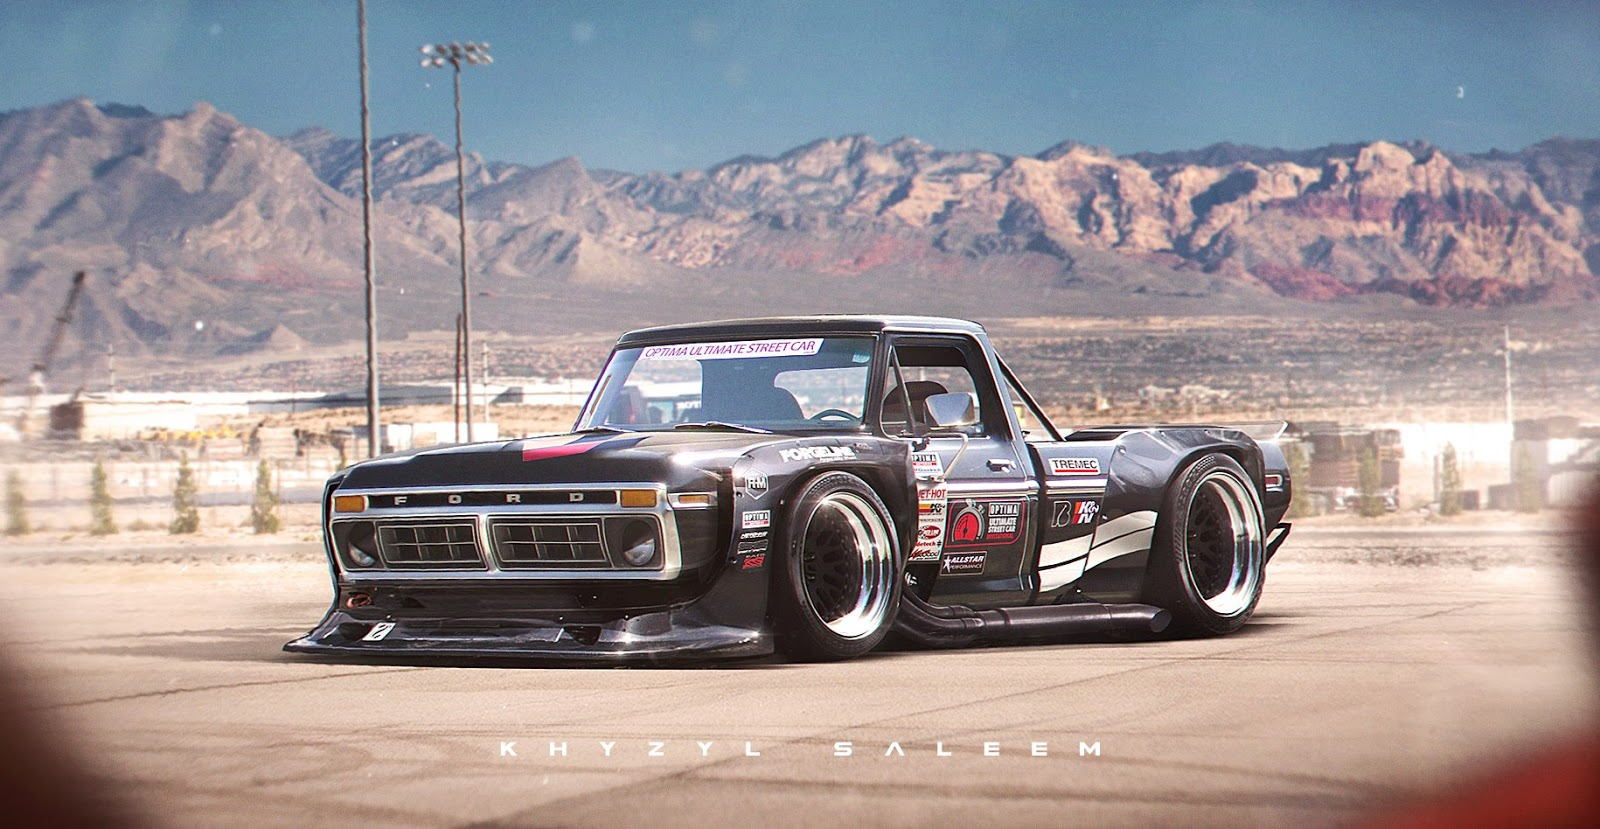 PHOTO GALLERY & Widebody 1970s Ford F-Series Rendering Is Out Of This World You ... markmcfarlin.com